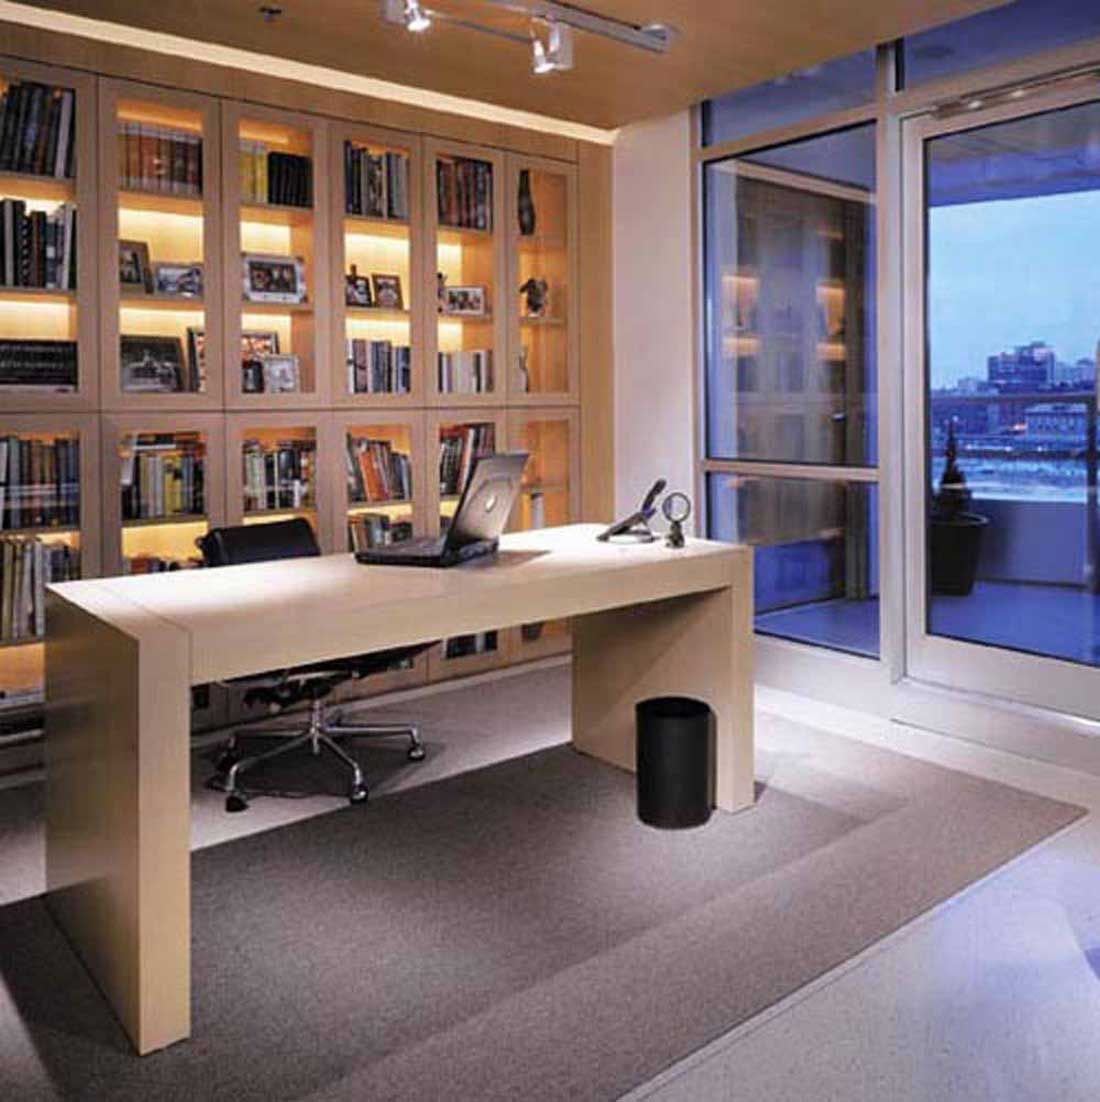 interior design ideas for office space - 1000+ images about Home Office on Pinterest Home office design ...